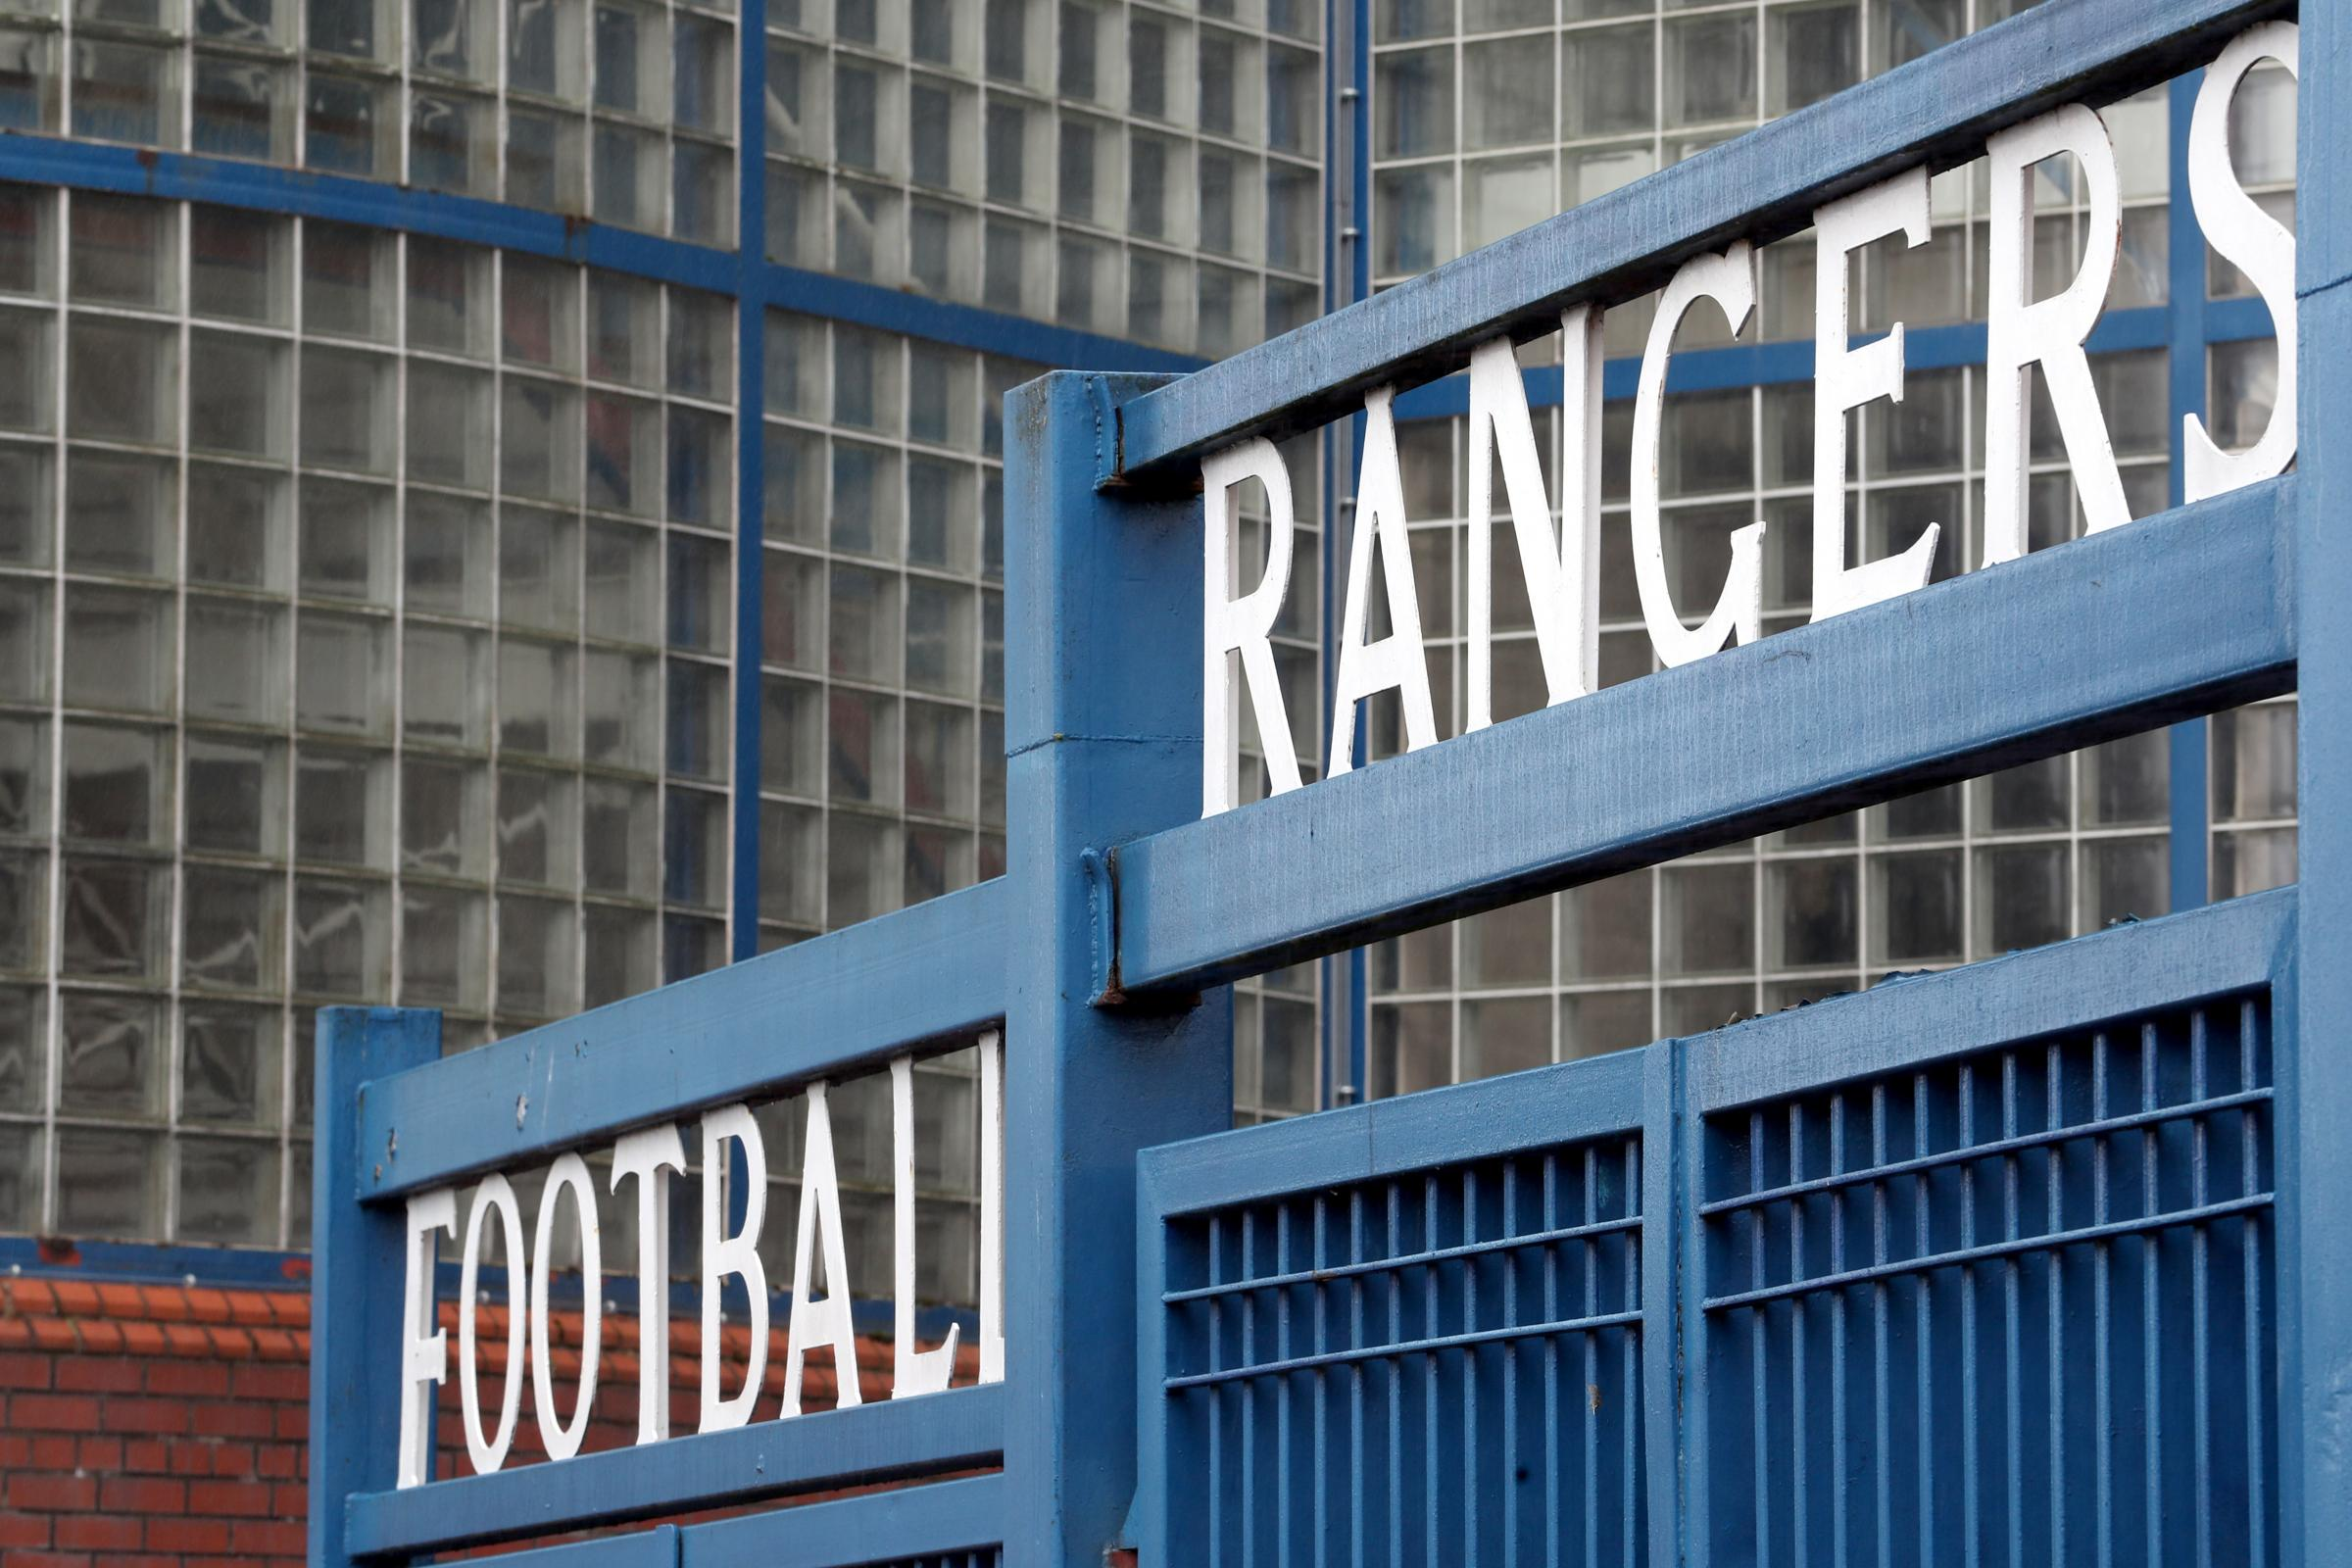 Rangers losses double again to £14.3m